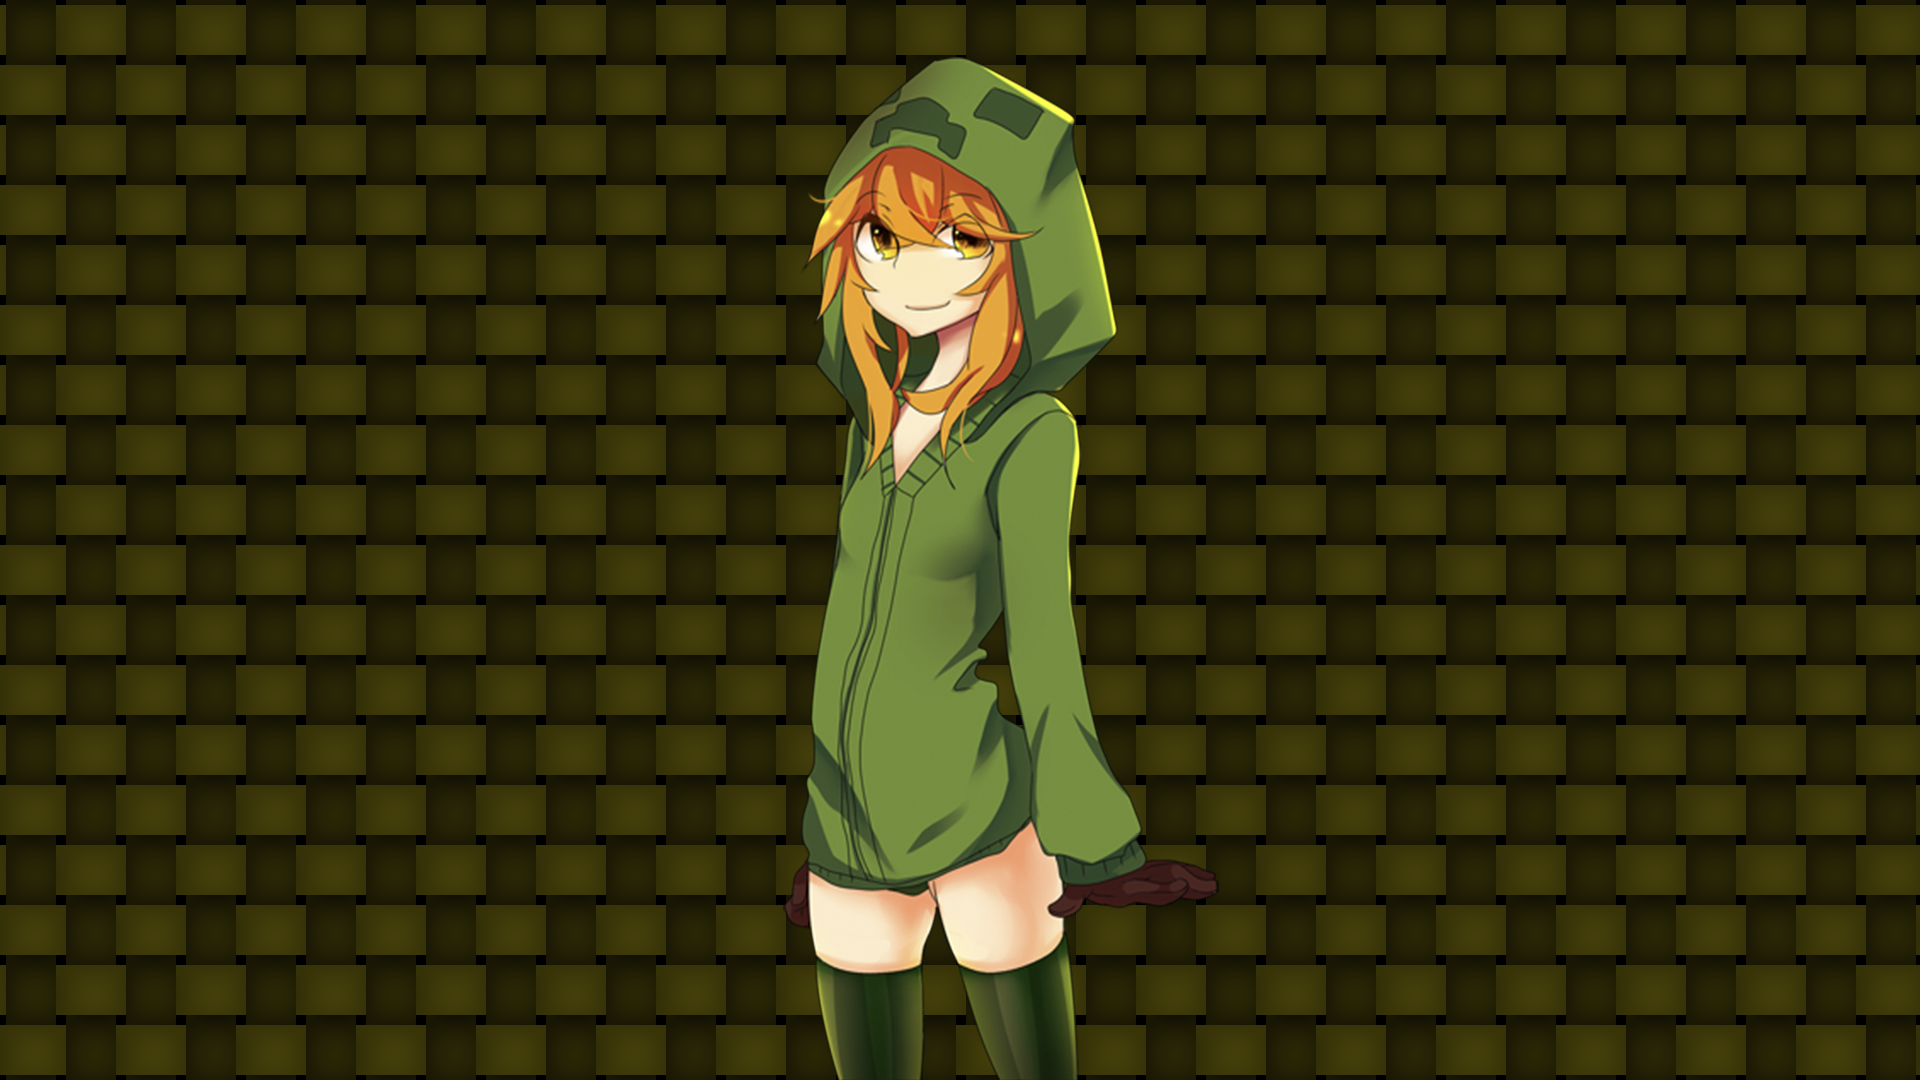 Video Game   Minecraft   Creeper   Women Anime Wallpaper 1920x1080